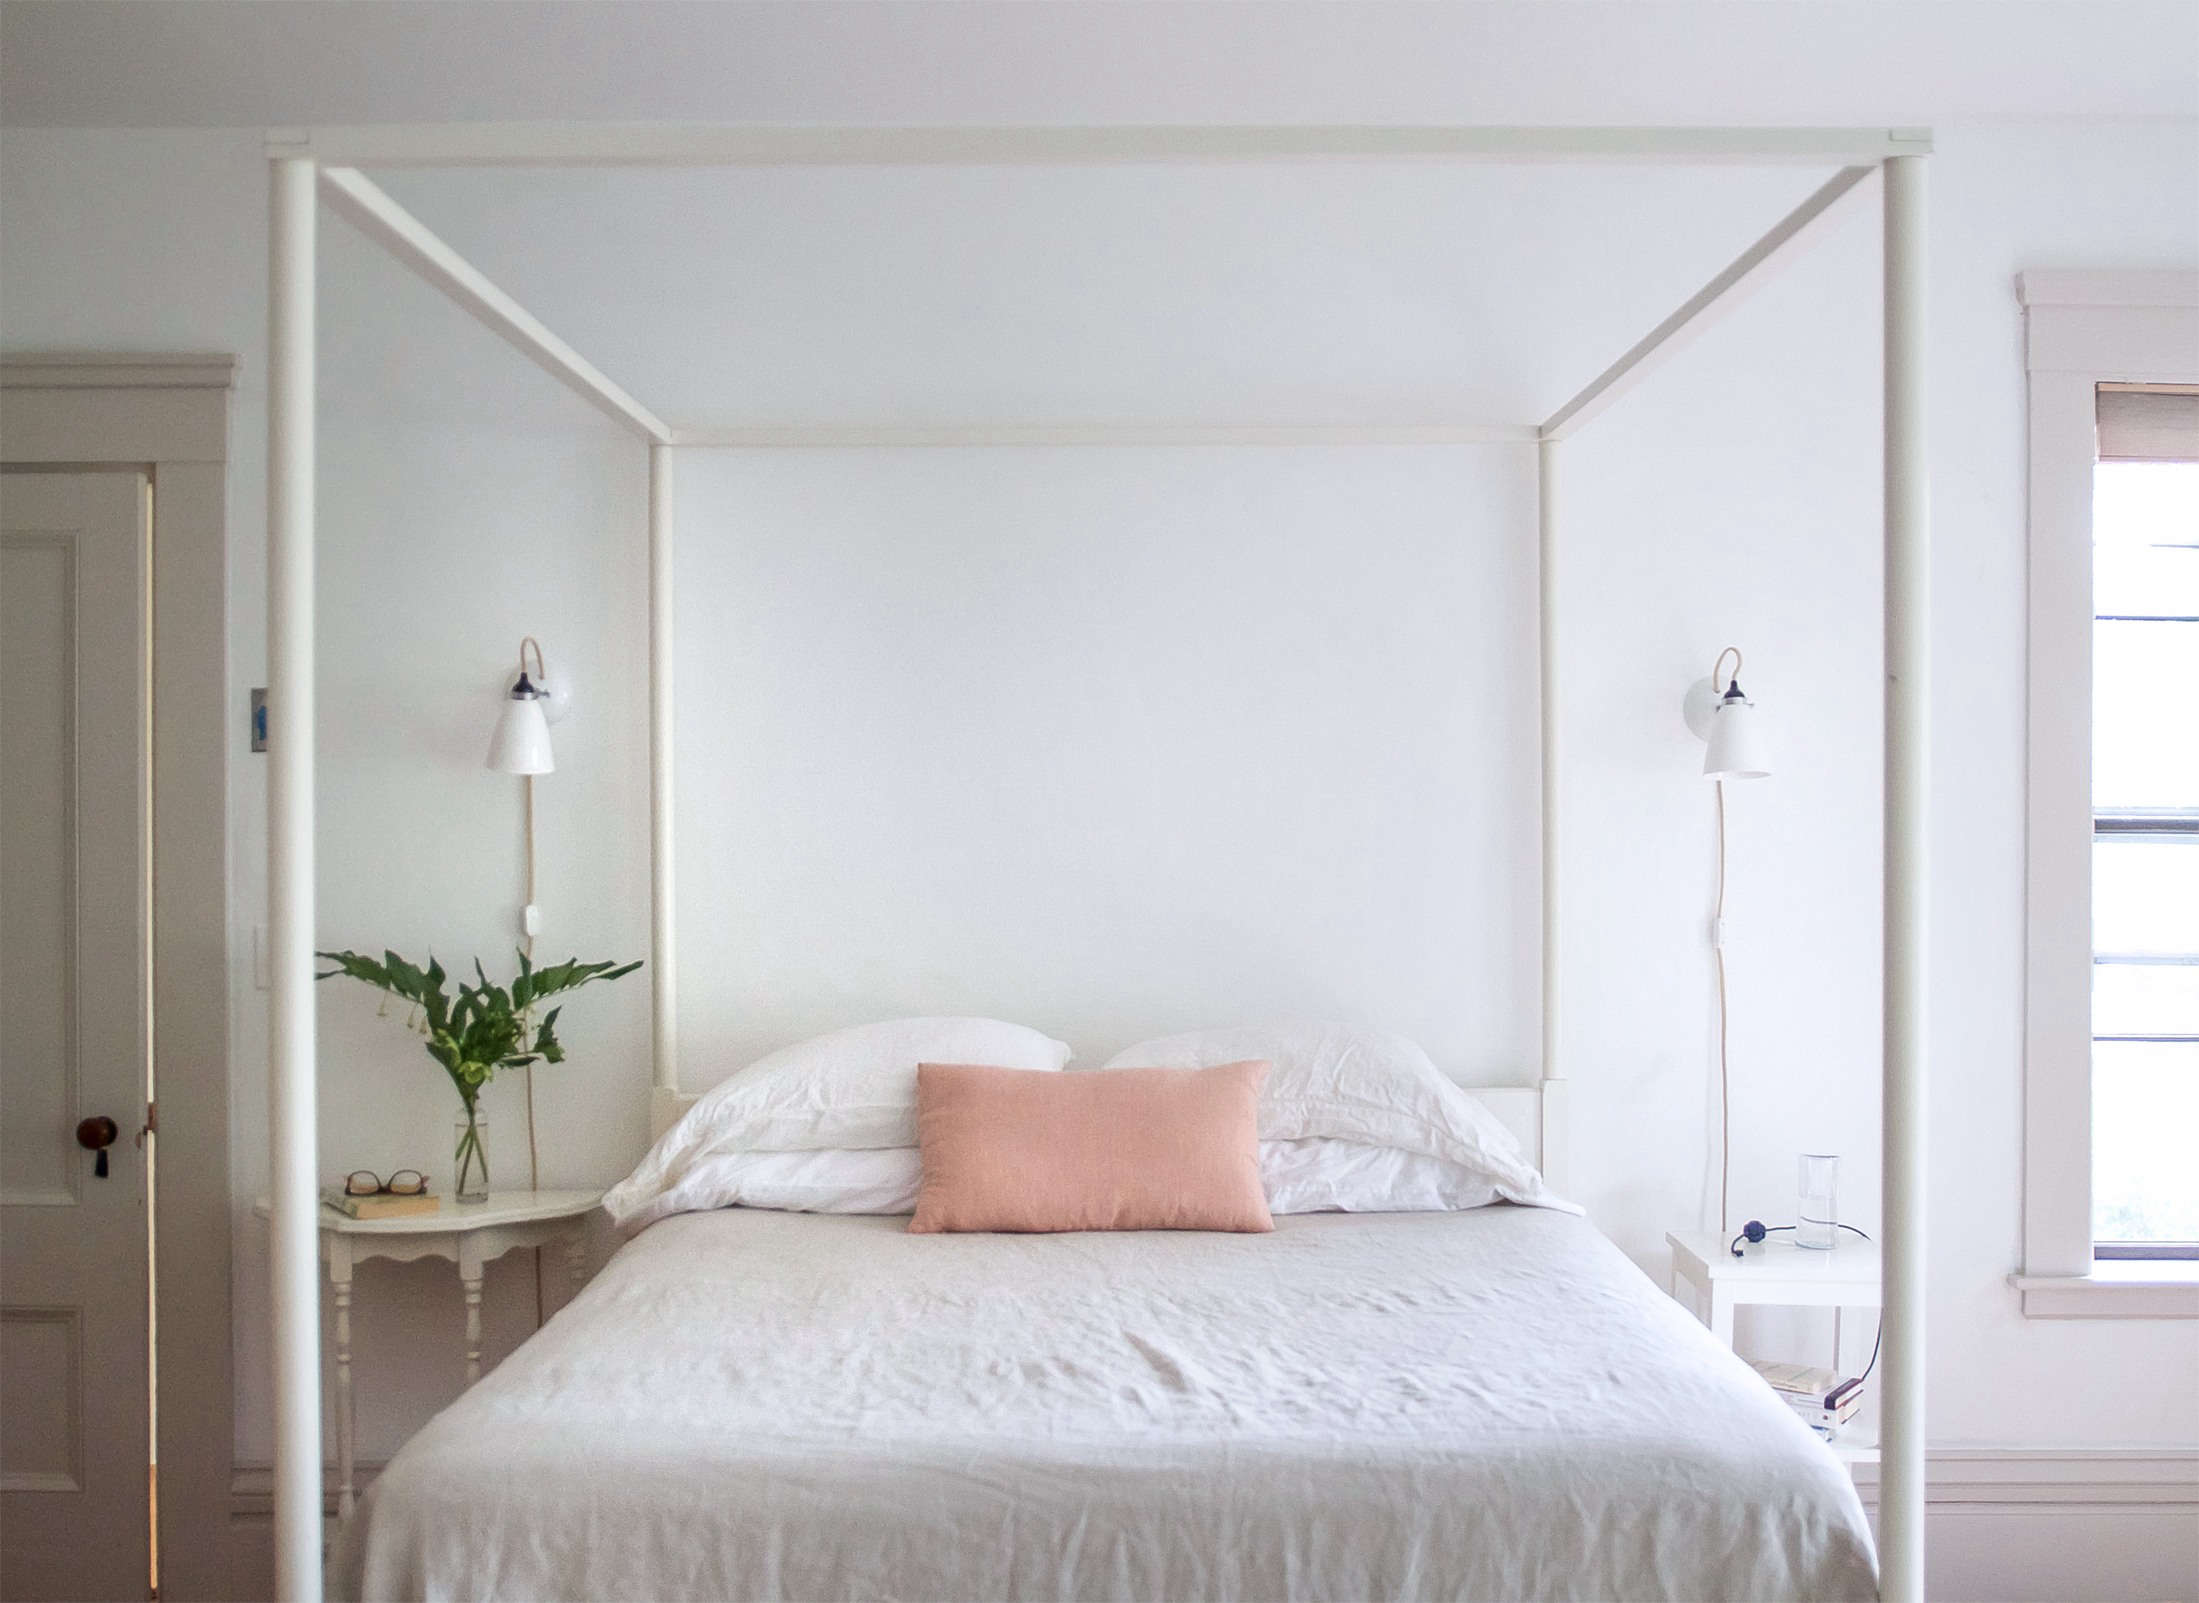 10 Things Nobody Tells You About Keeping Your Bedding Fresh